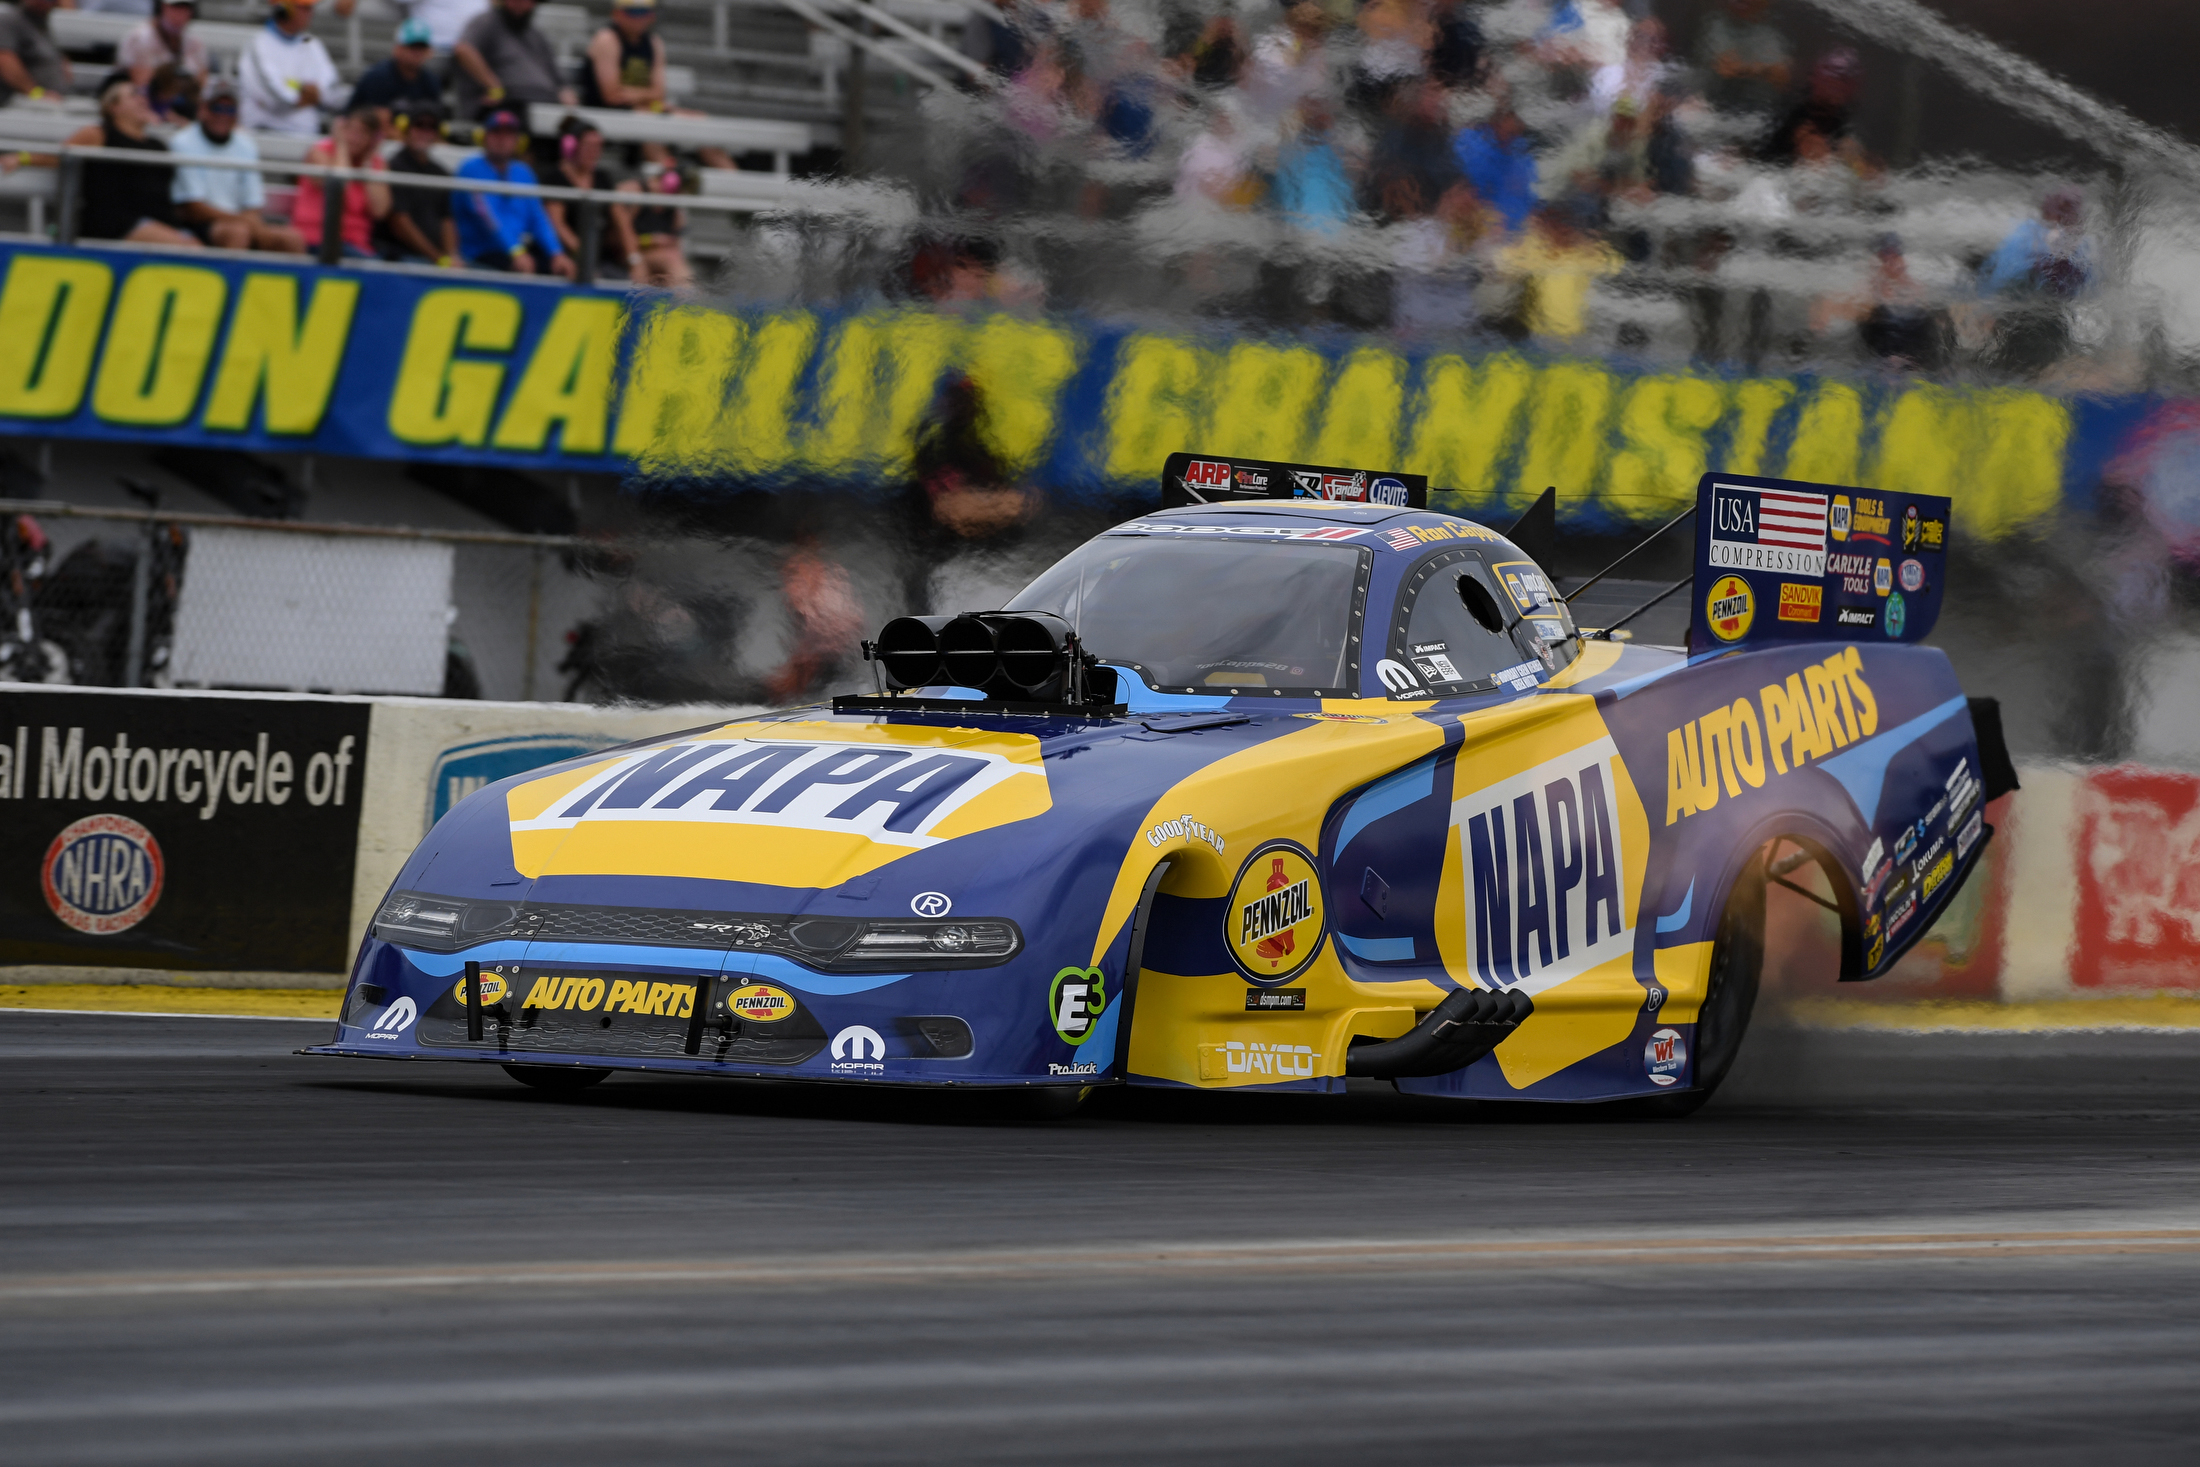 NAPA Auto Parts Funny Car pilot Ron Capps racing on Sunday at the Amalie Motor Oil NHRA Gatornationals